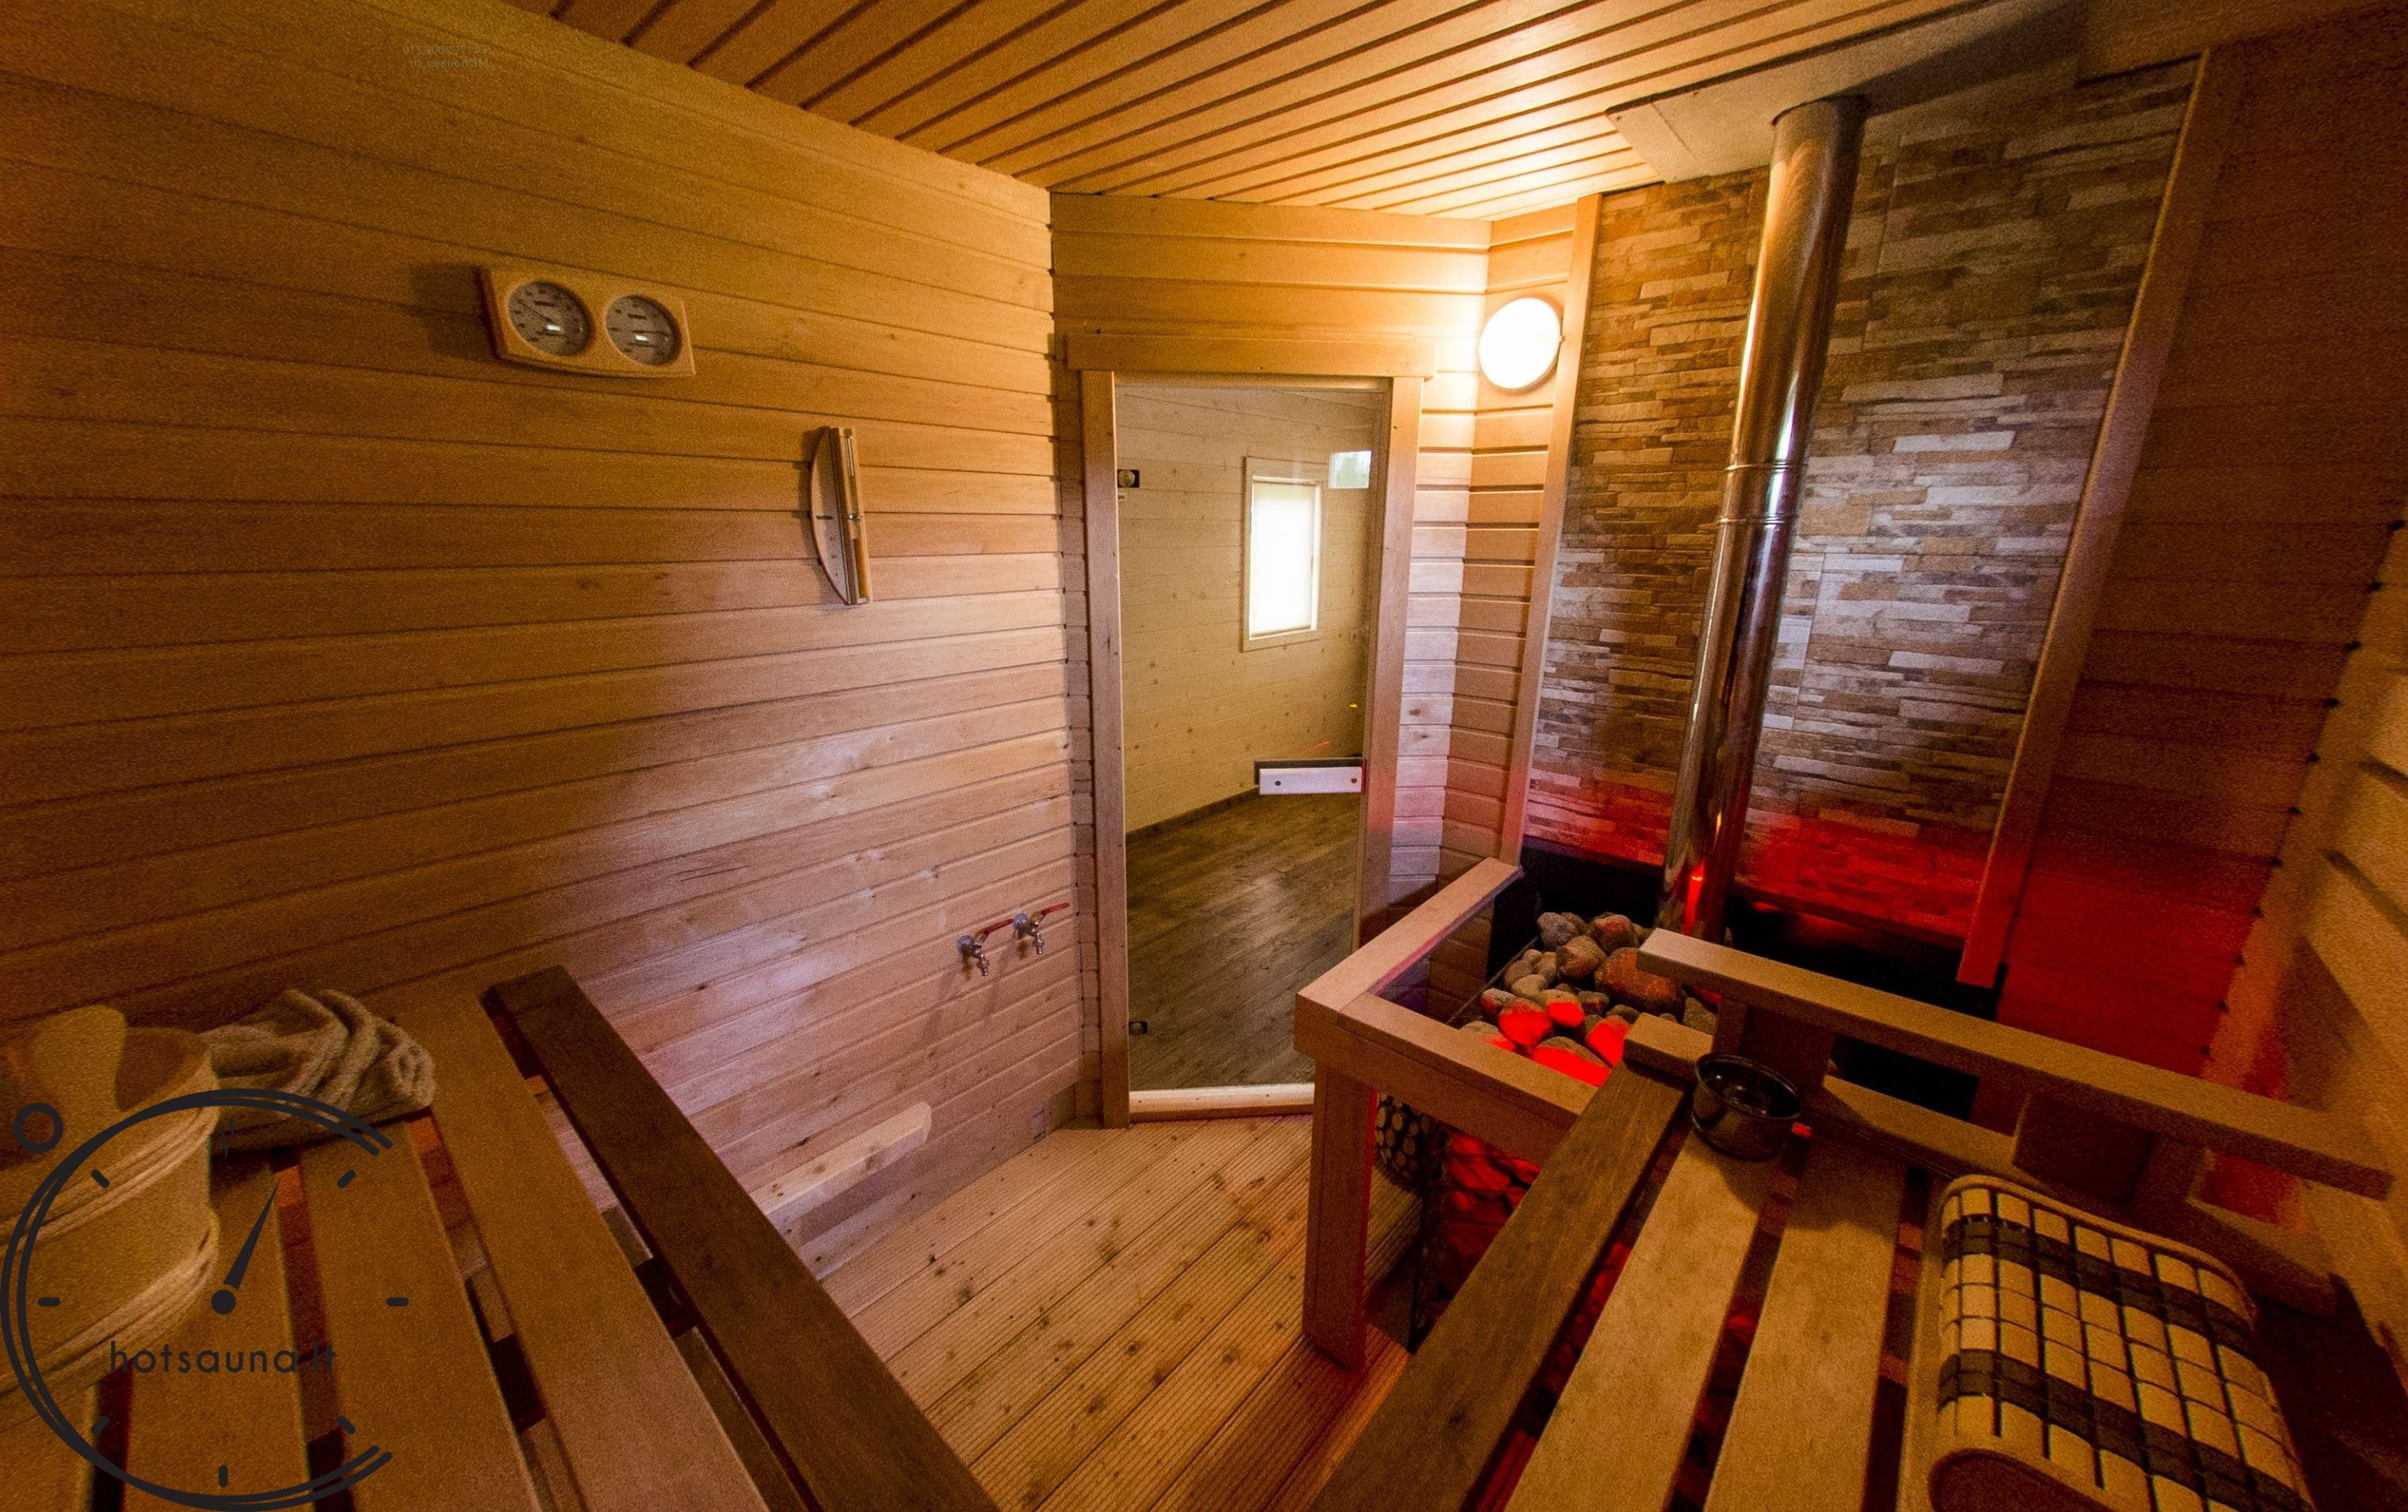 sauna instaliation works (10)